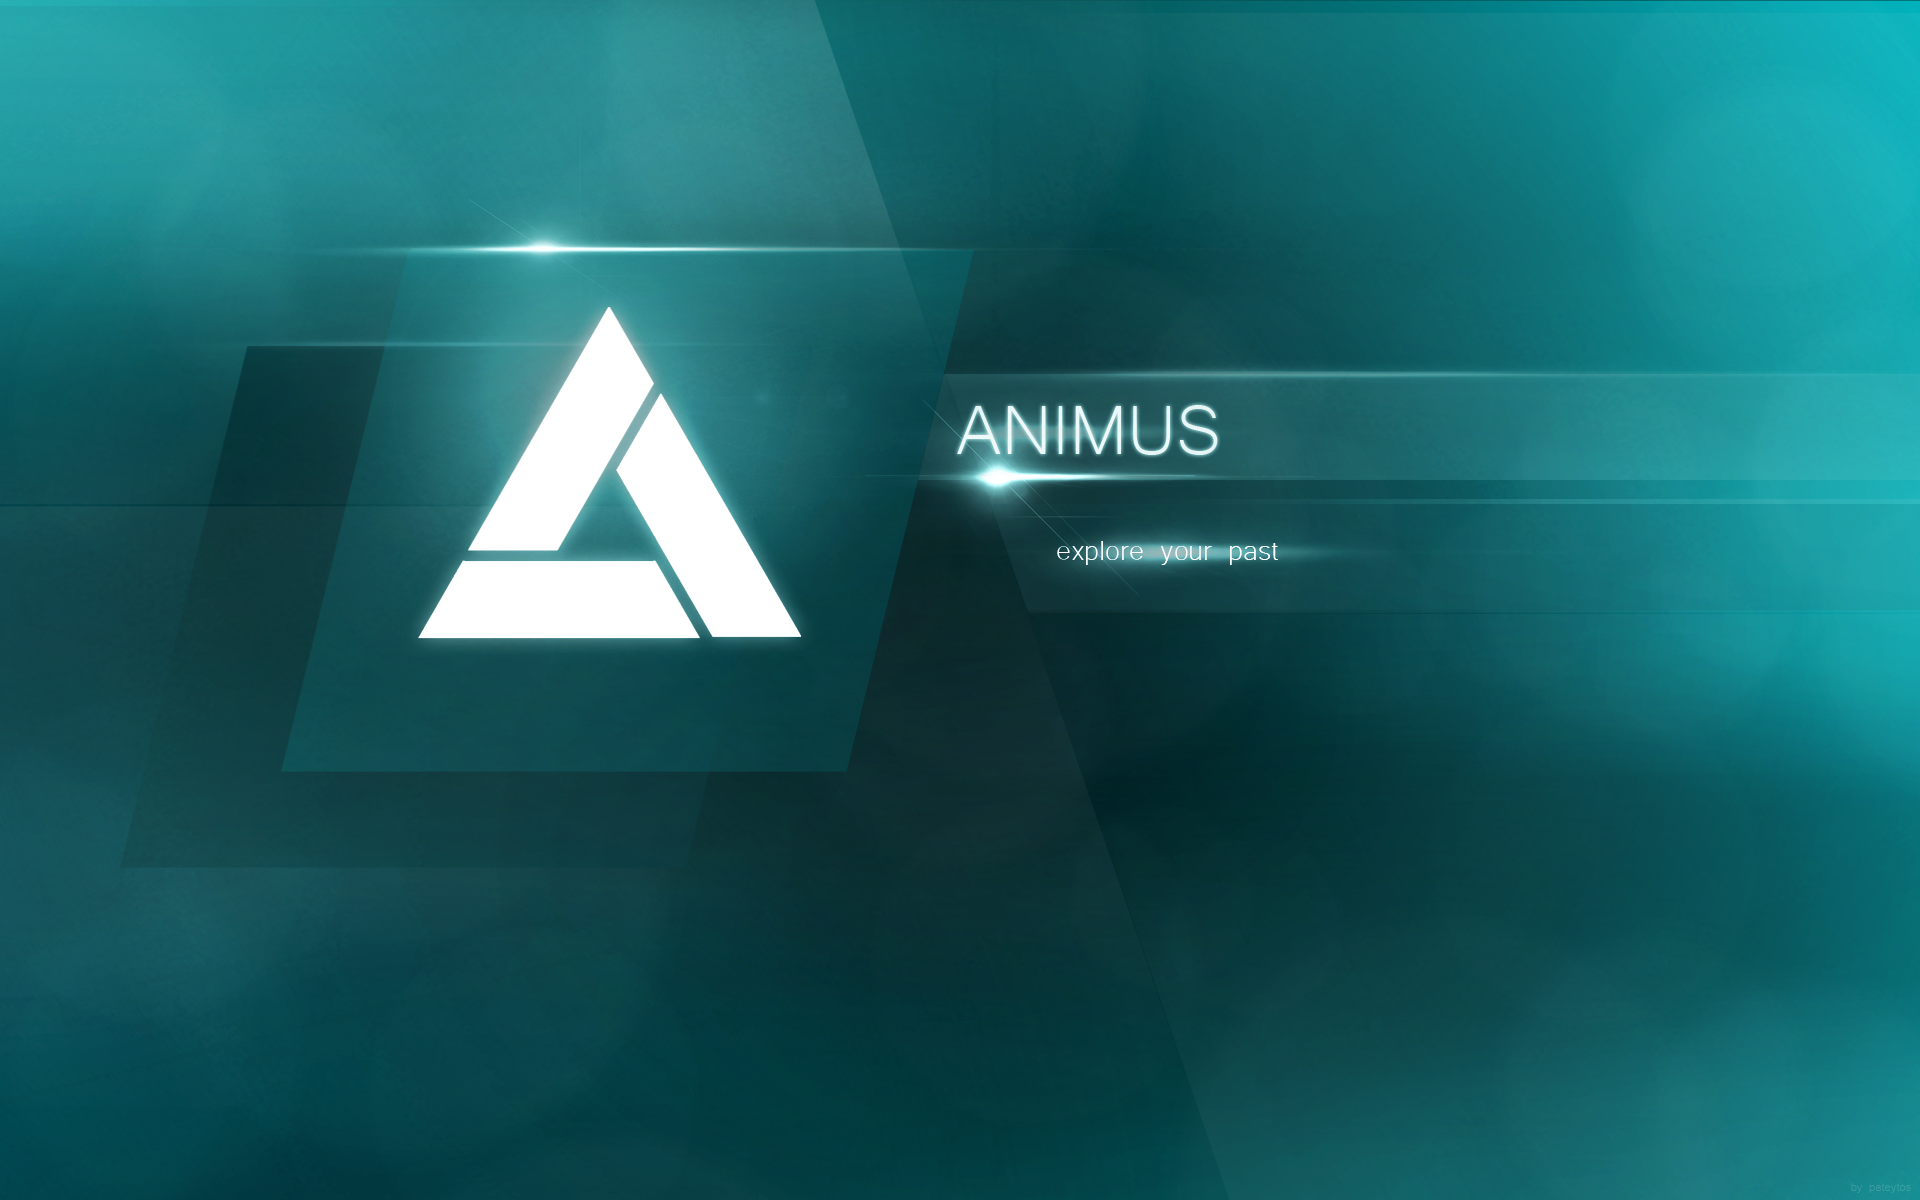 Animus | Animus Images, Pictures, Wallpapers on BsnSCB Graphics